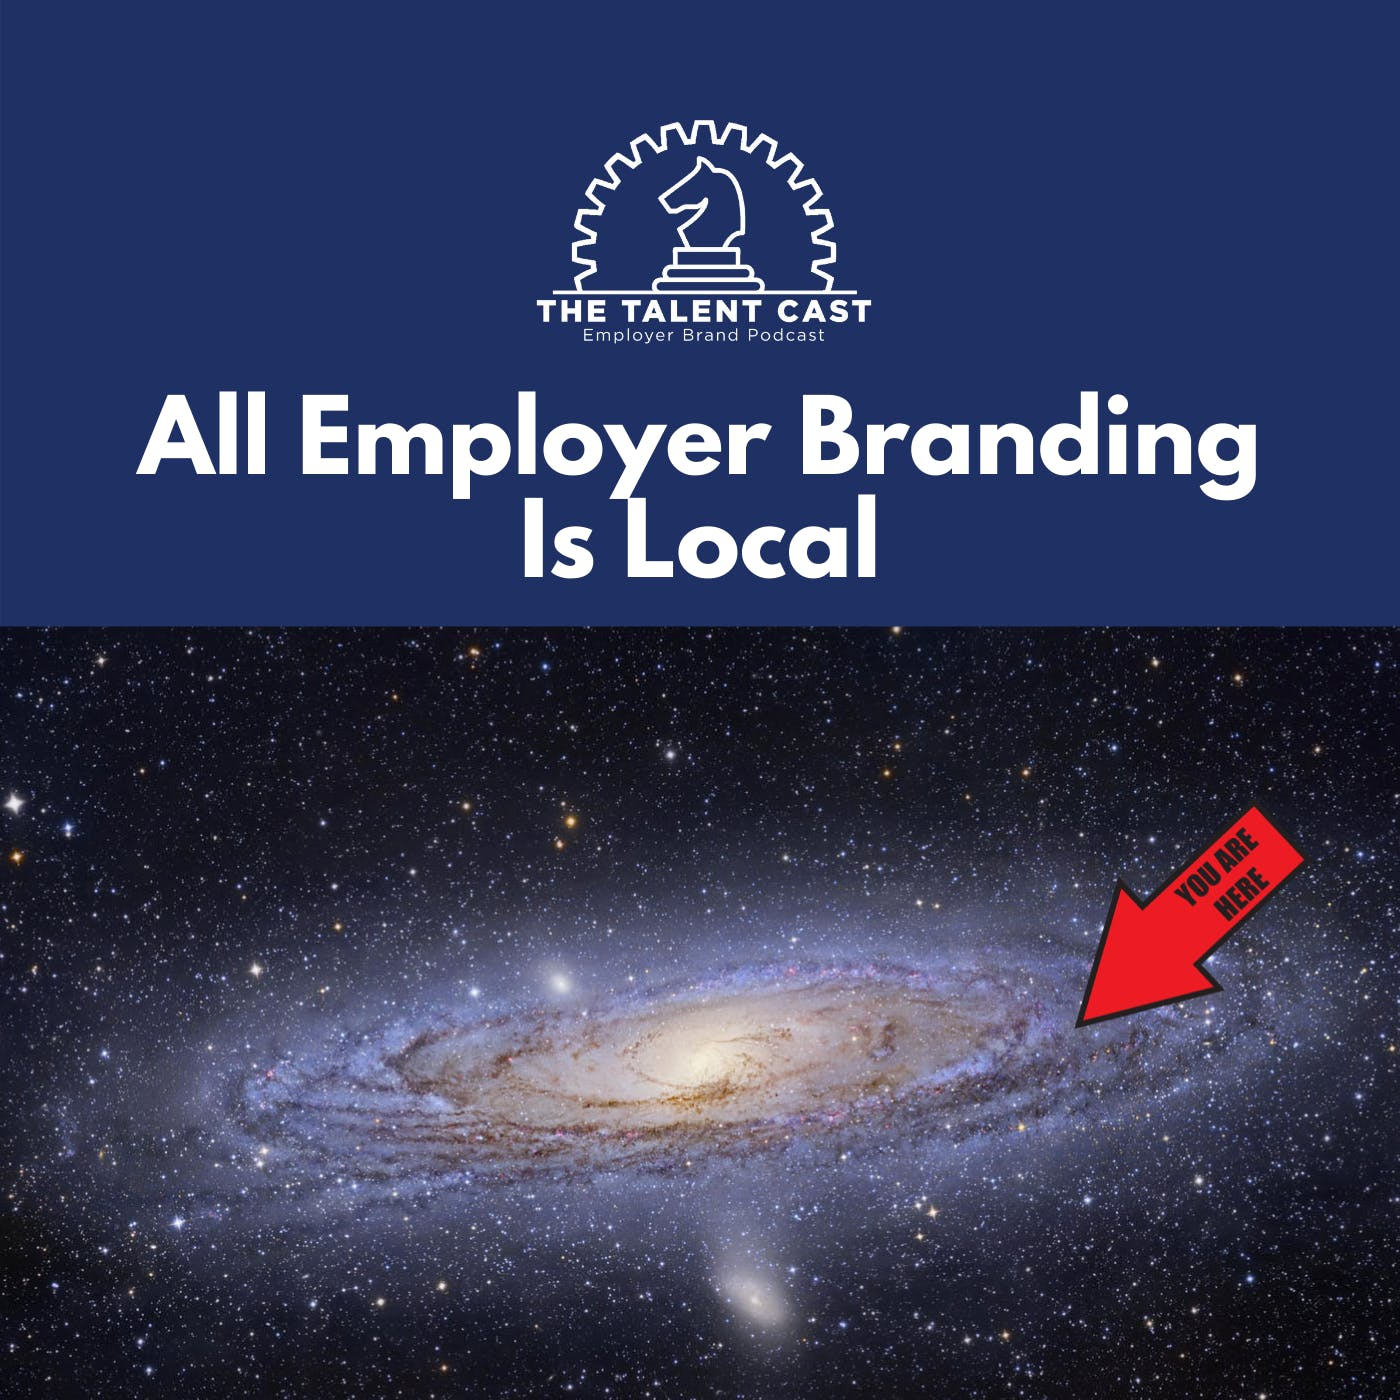 All Employer Branding Is Local